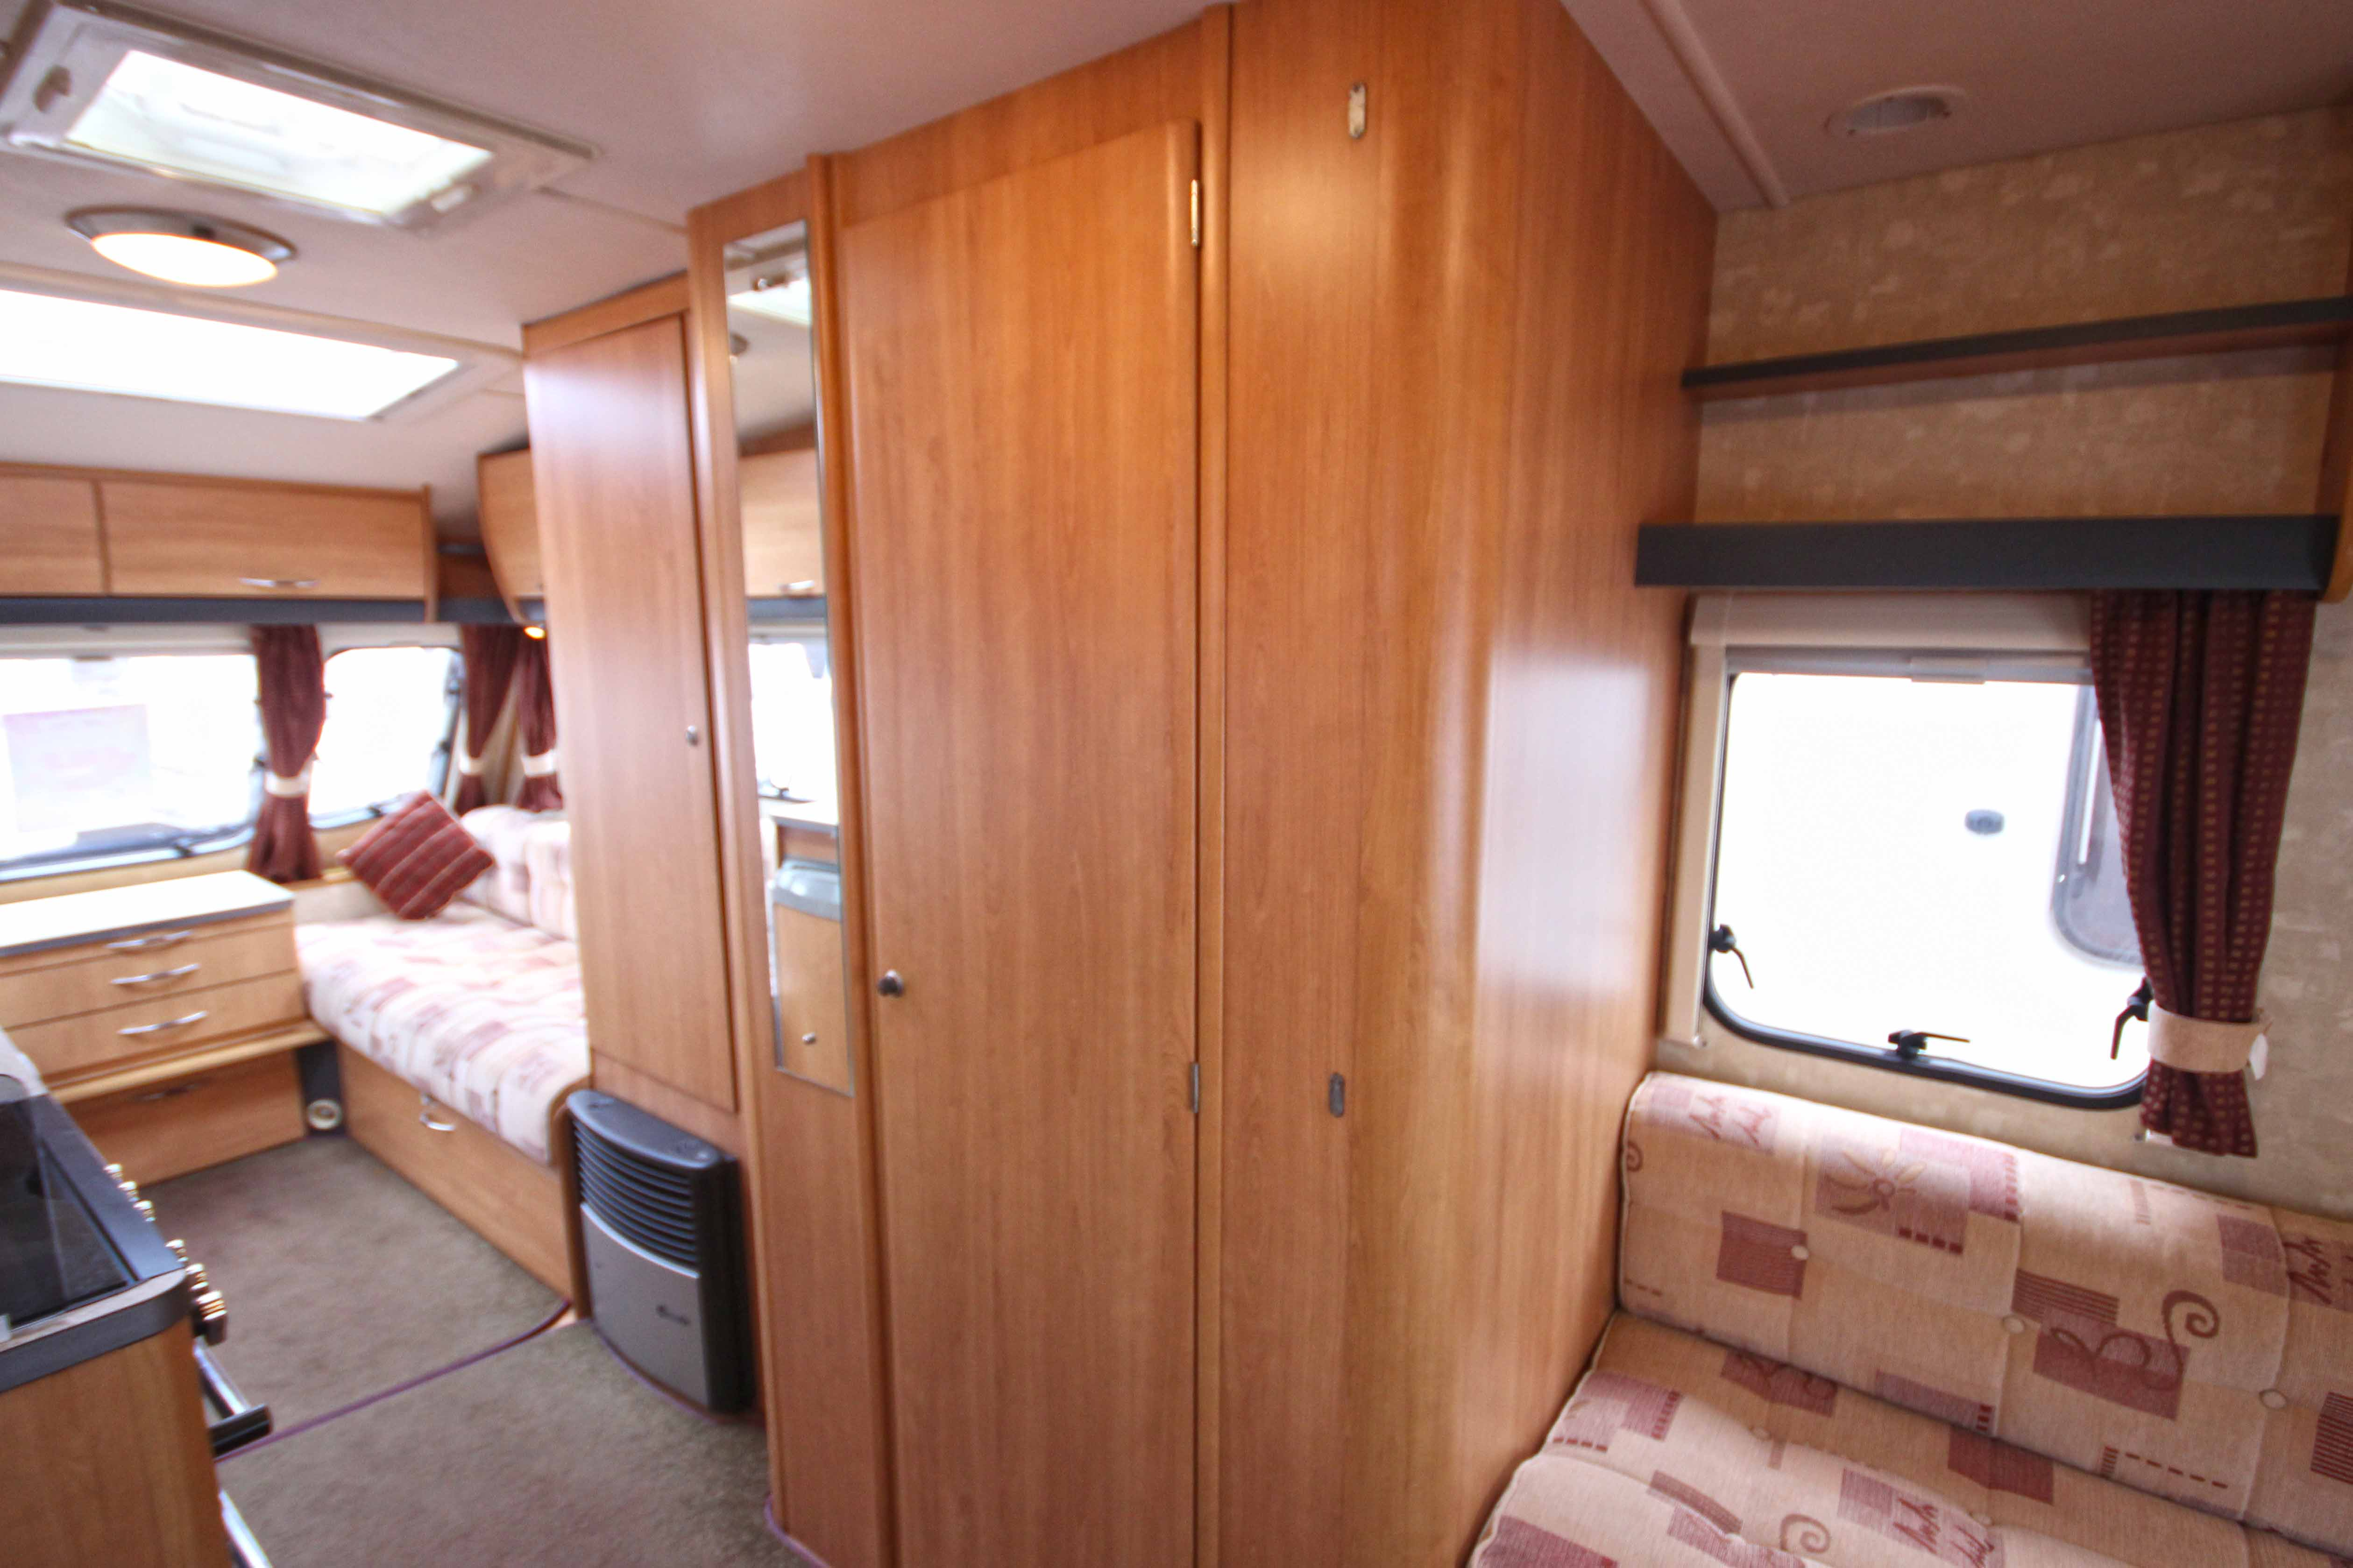 Kina Campers 3 4 5 berth Ace Jubilee Viceroy 2